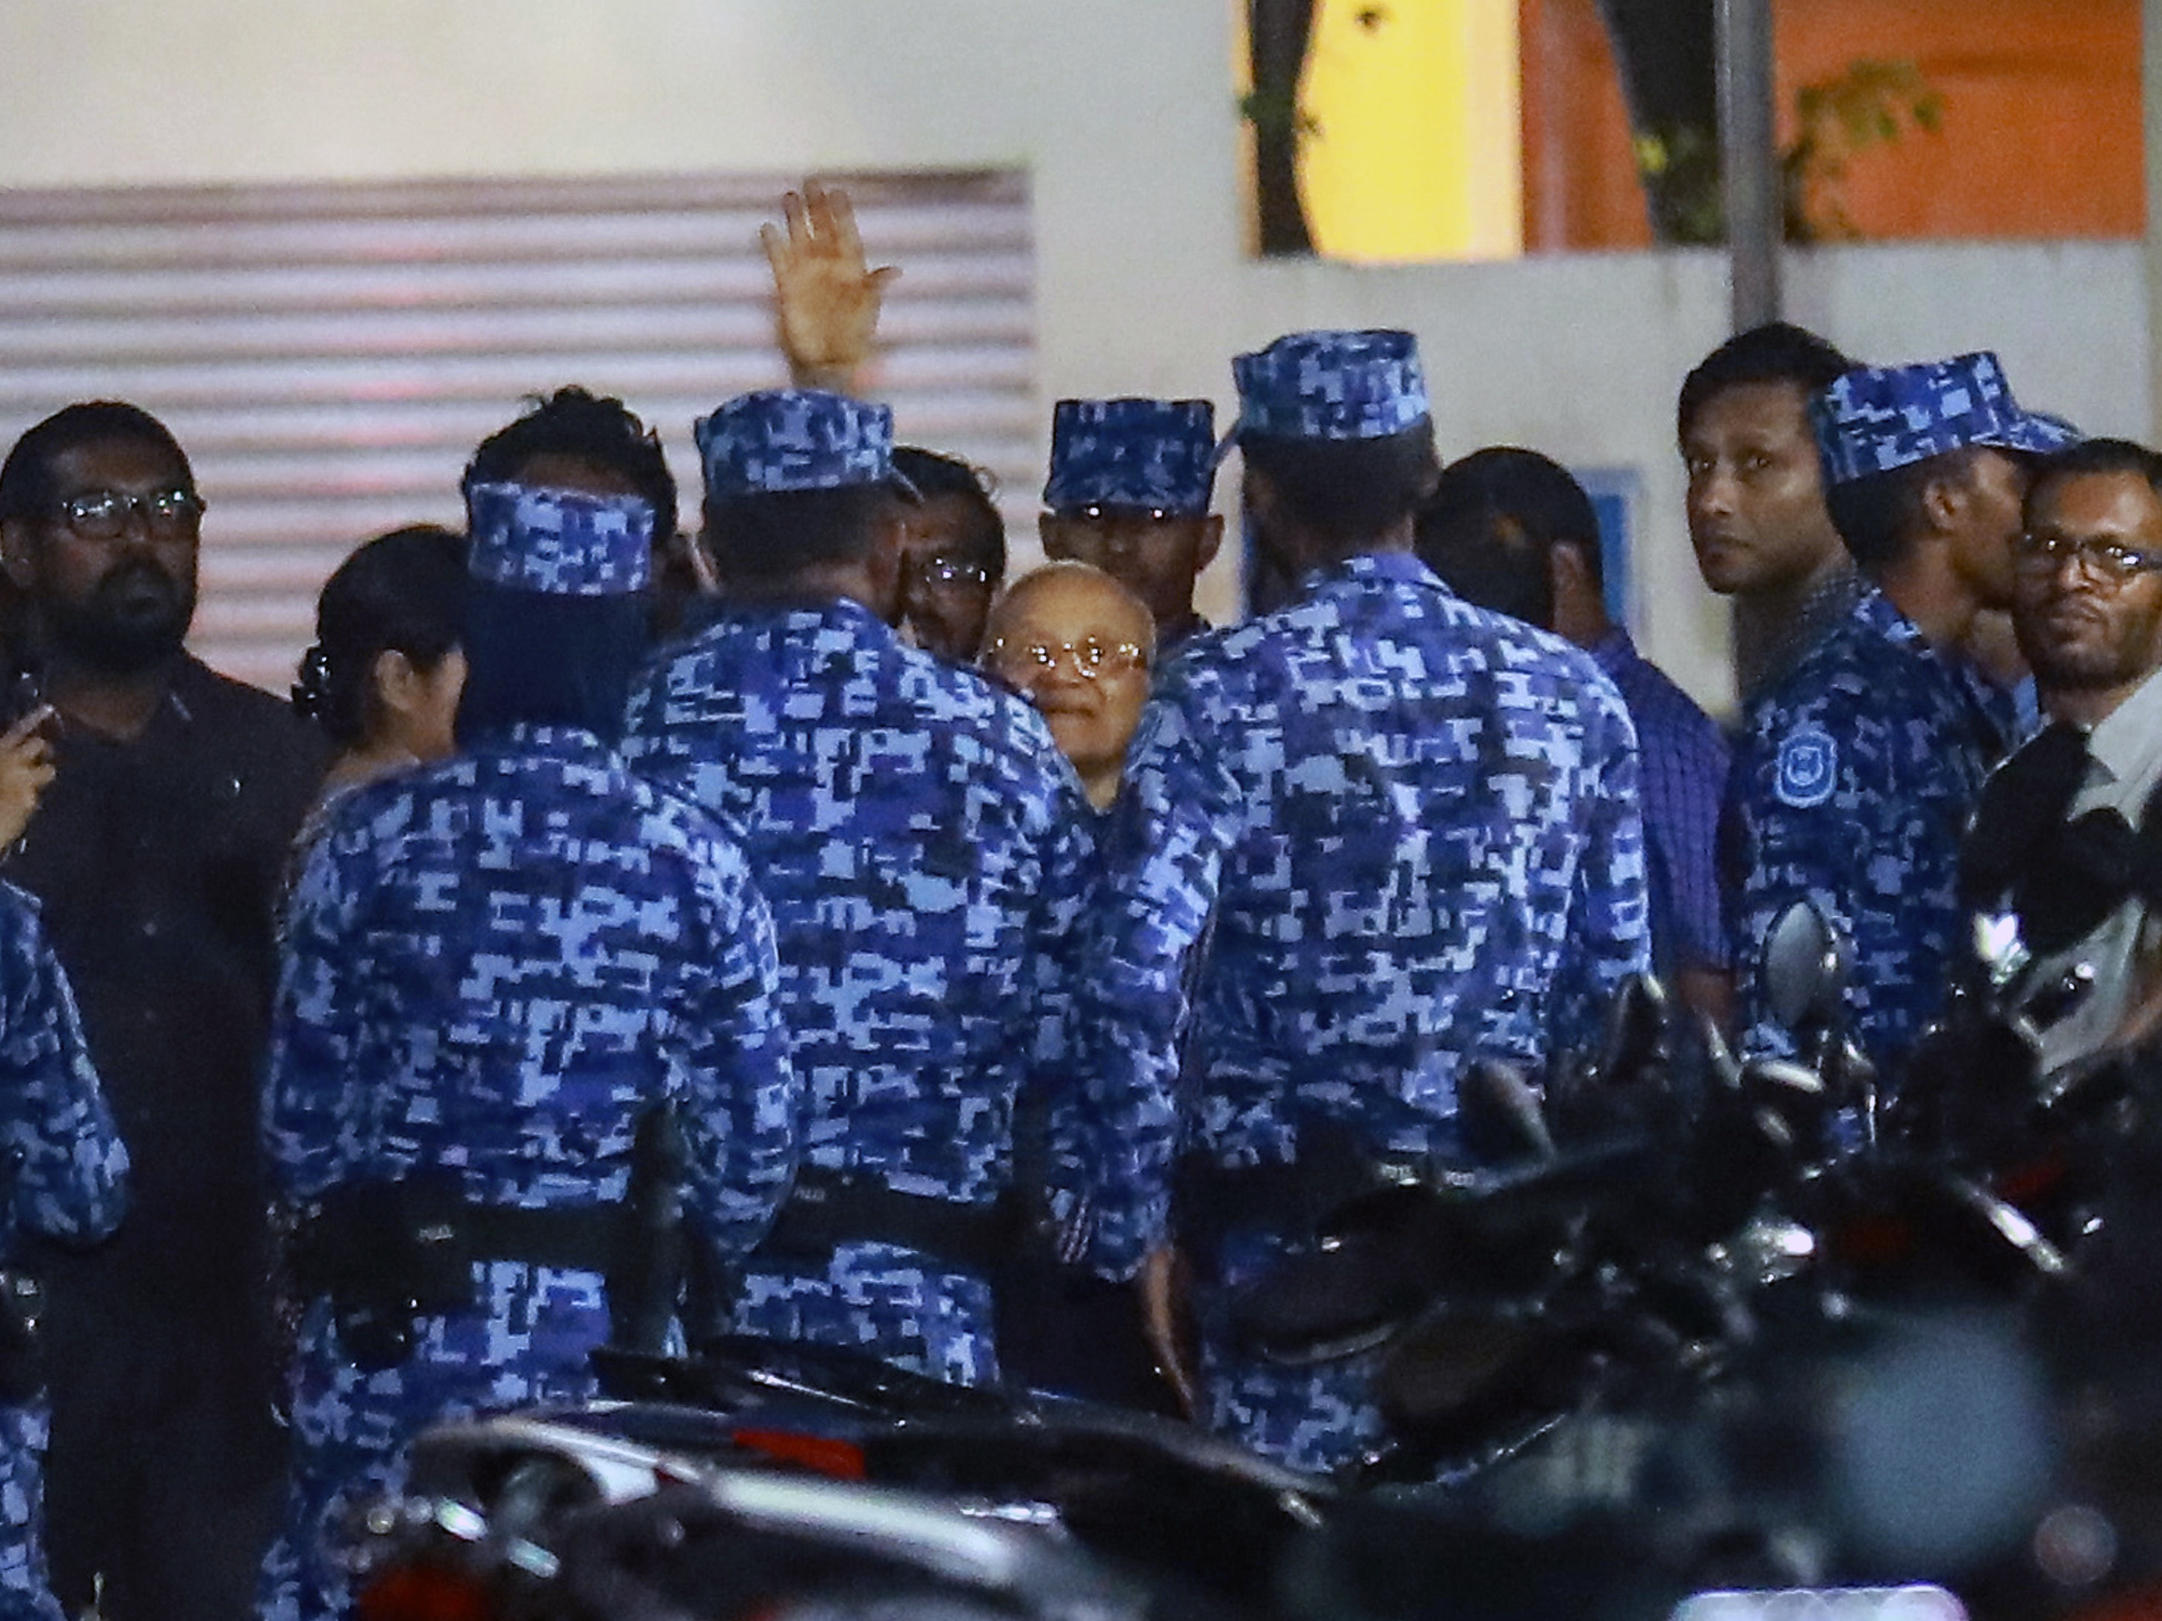 Maldives: Emergency declared, SC Judges, former President Abdul Ghayoom detained